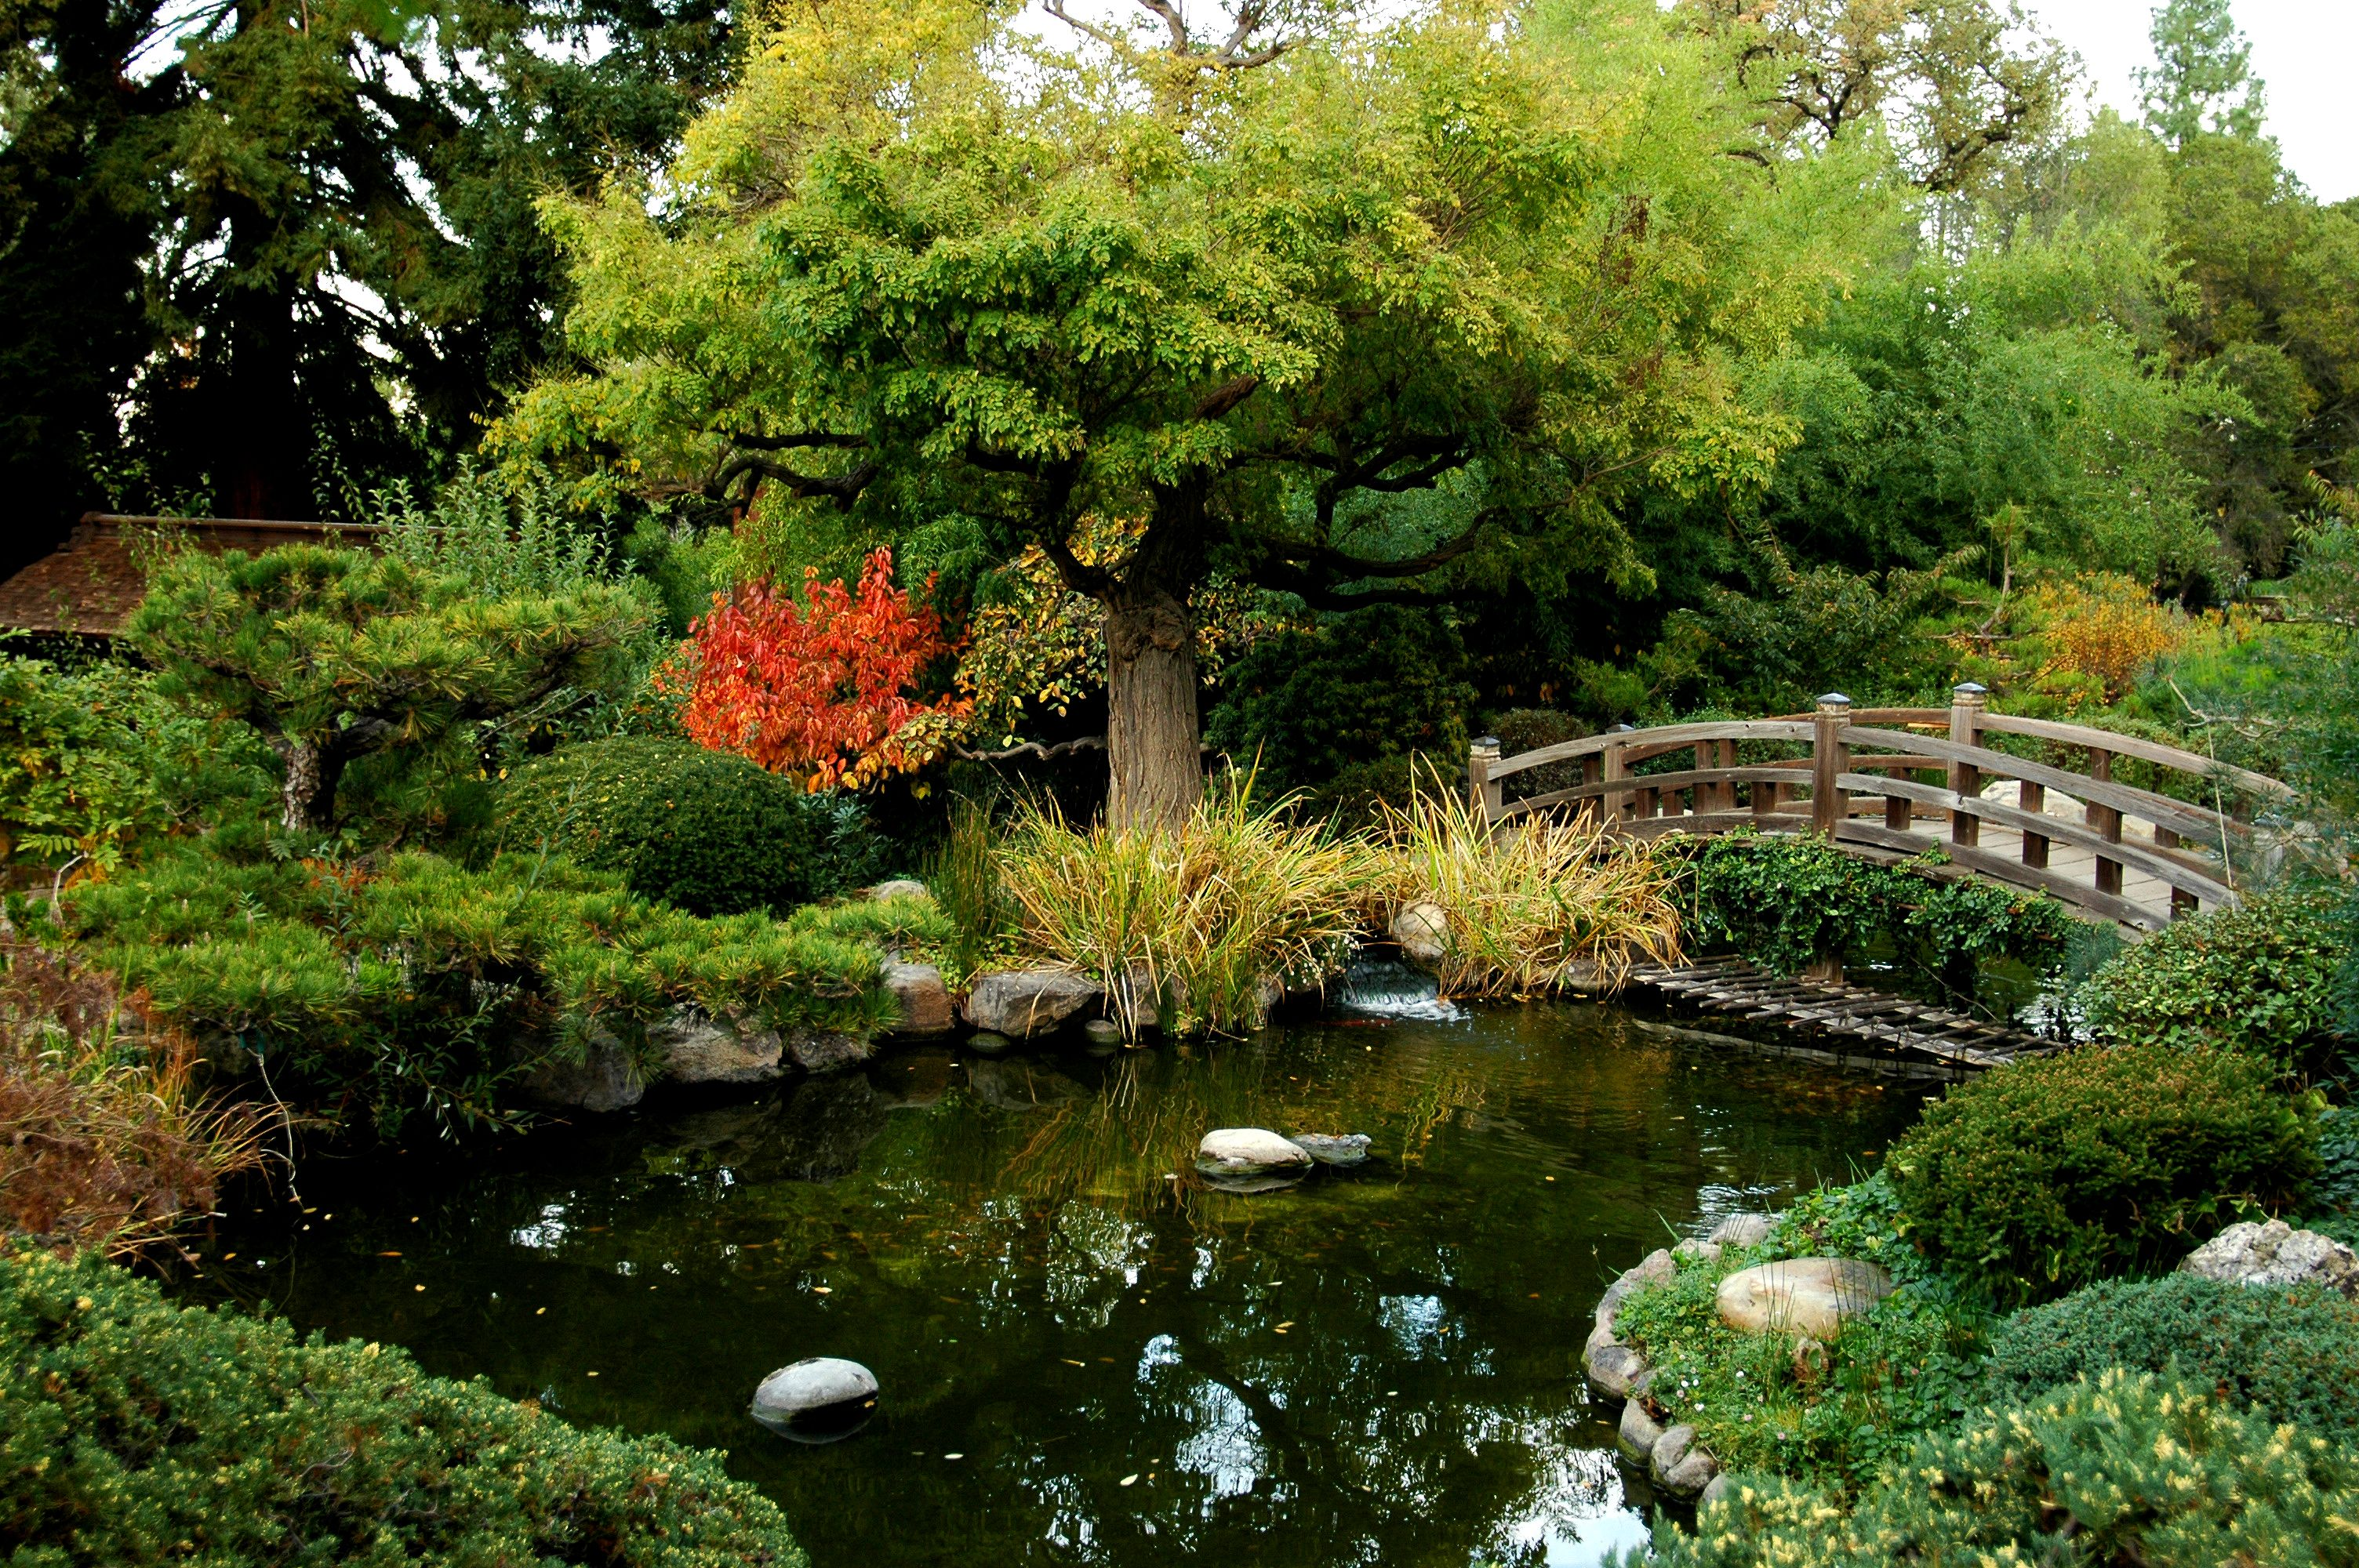 Landscaping ponds pond garden tour rail city garden june for Koi pond supply of japan